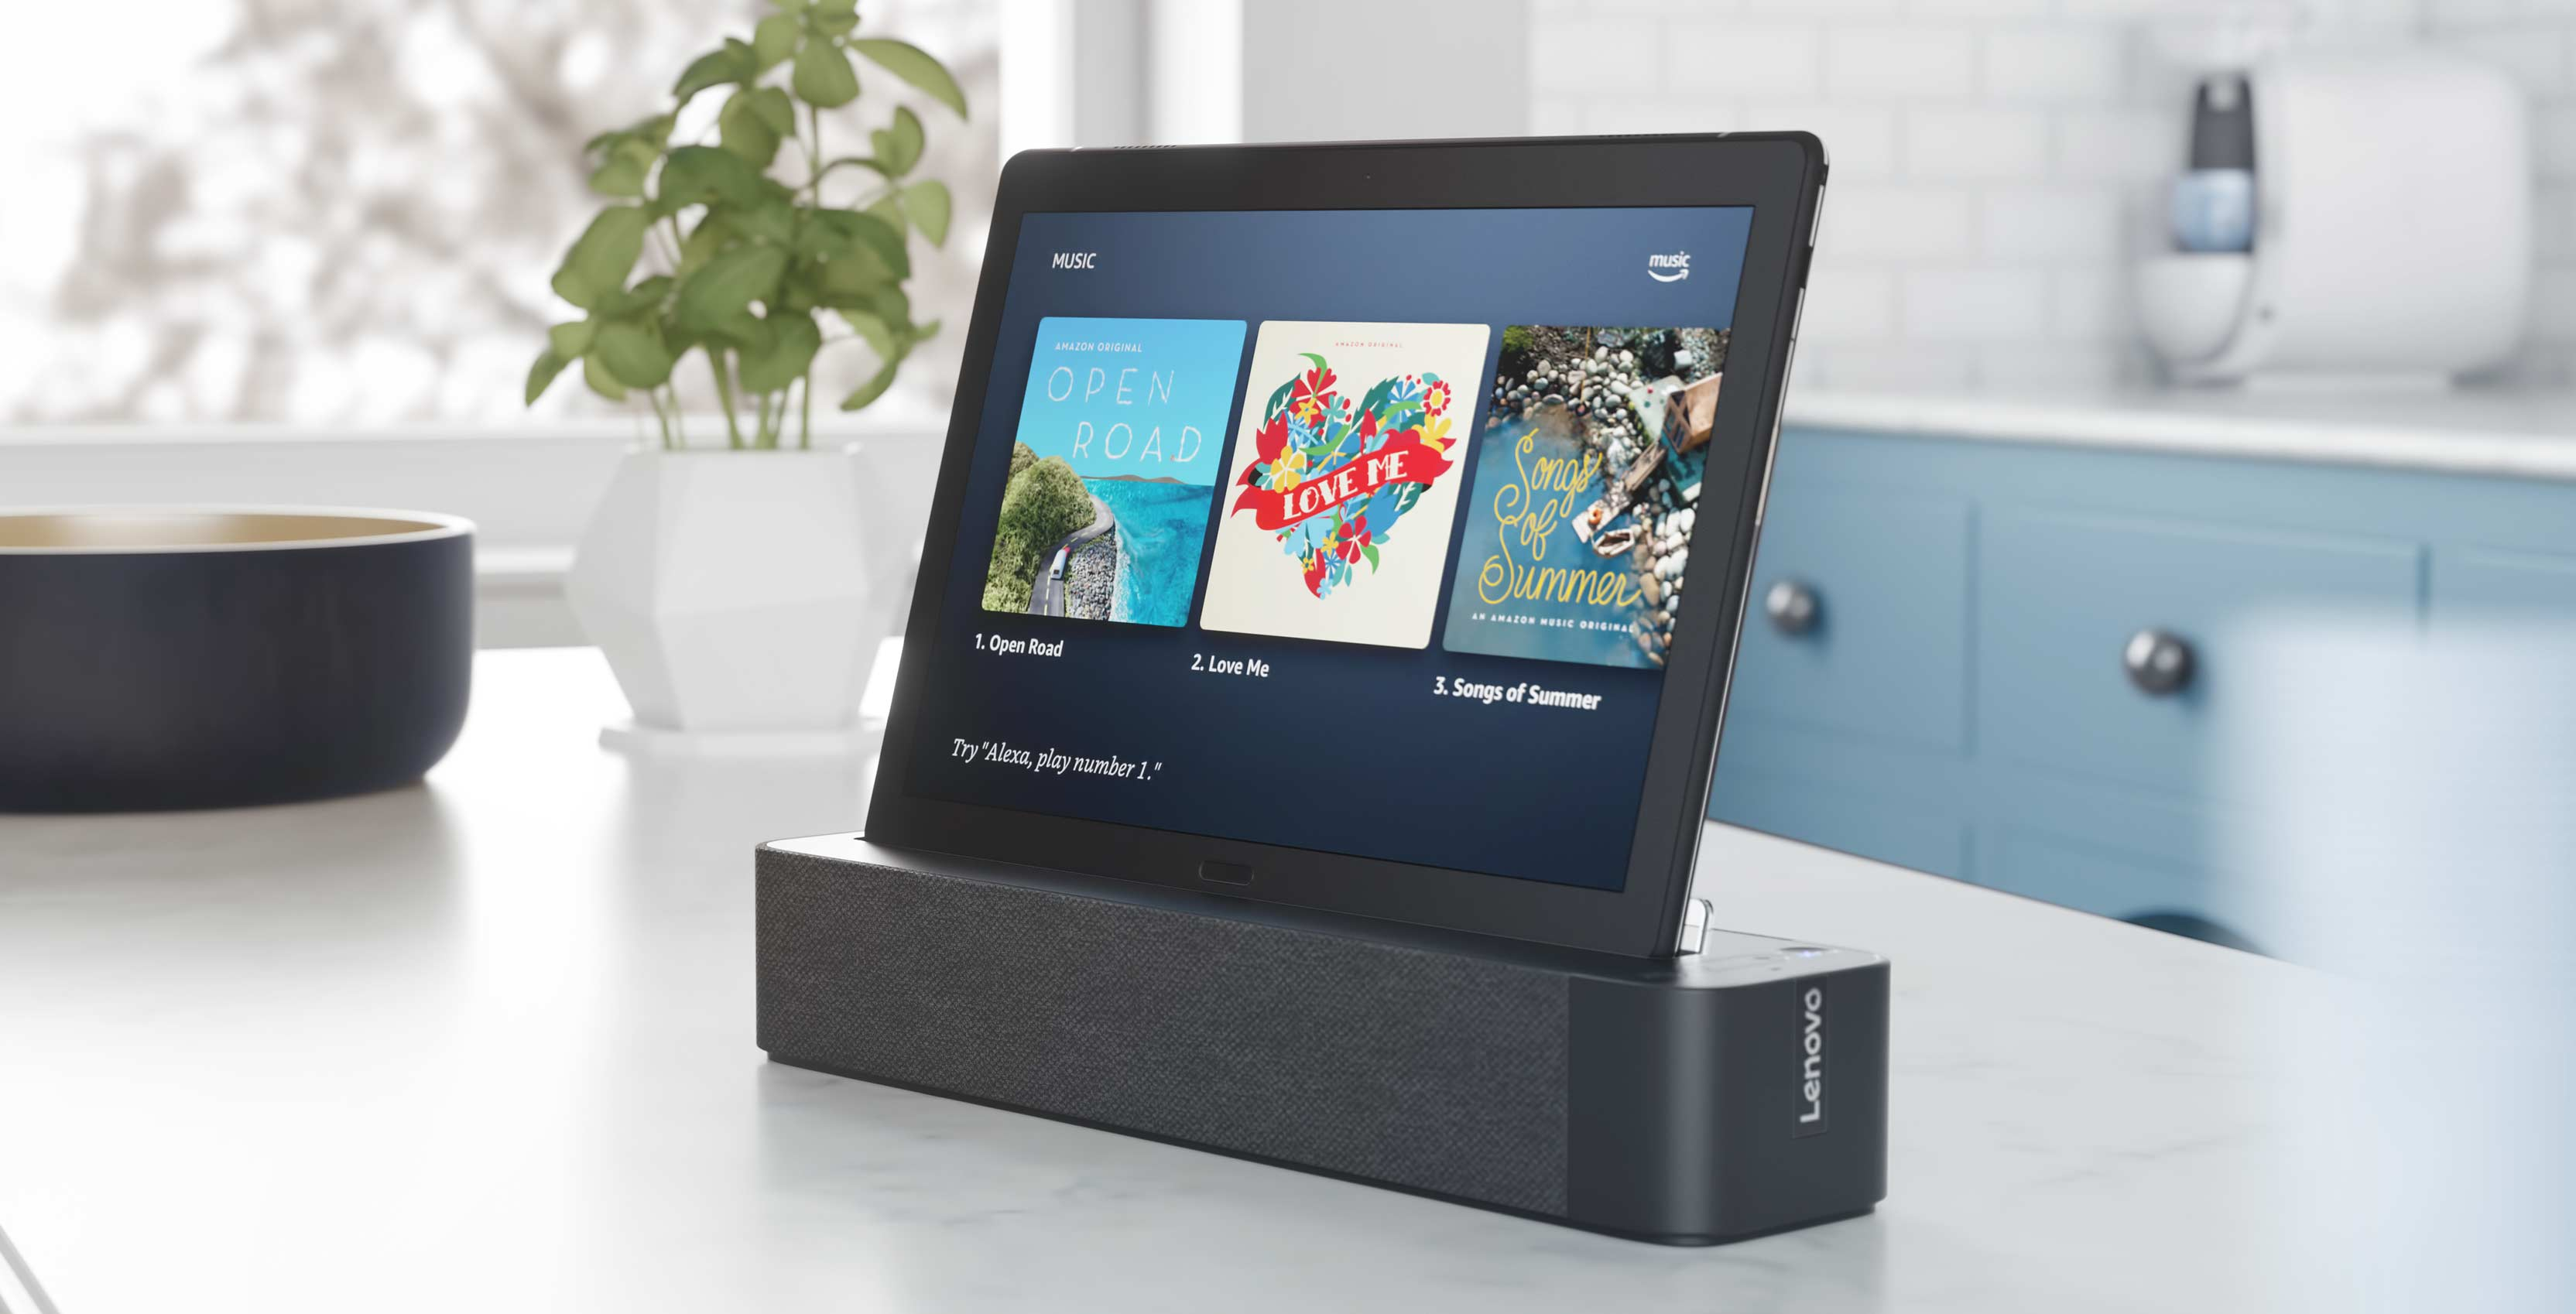 Lenovo tablet/dock combination looks to make the Echo Show